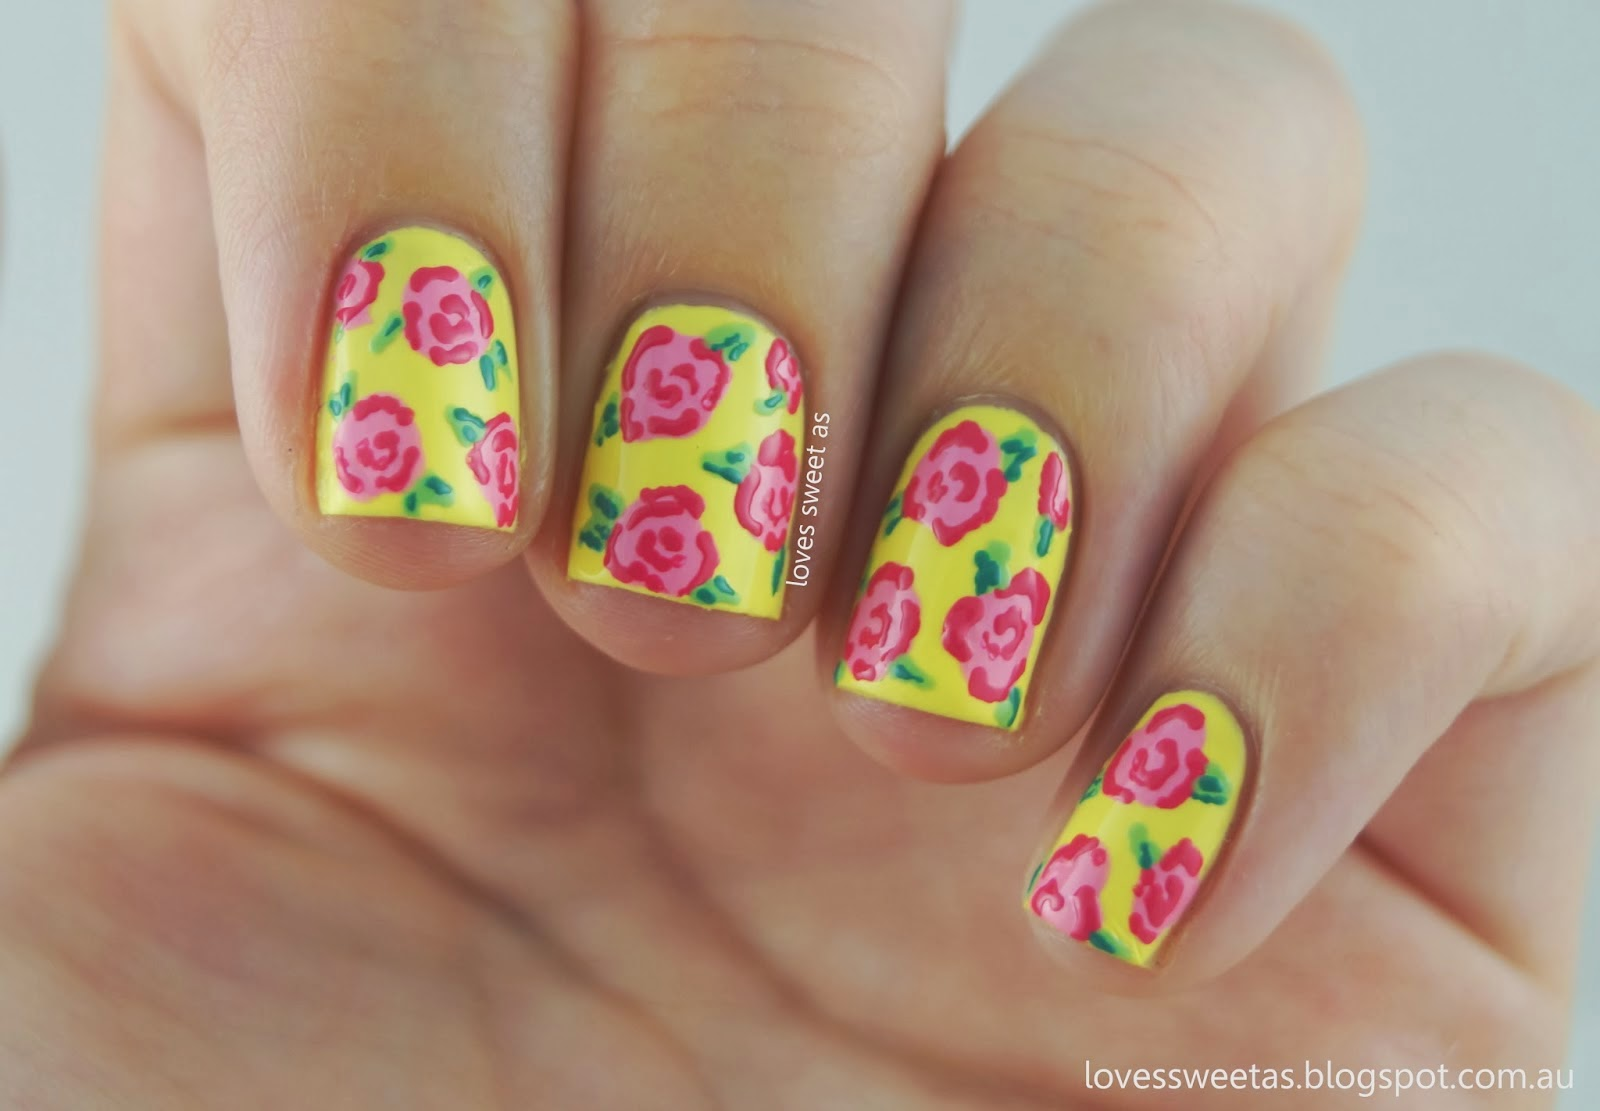 Loves sweet as nail art tutorial vintage roses ive been wanting to do nail art tutorials for a while now and now that i have this blog i hope it can become a regular thing prinsesfo Choice Image